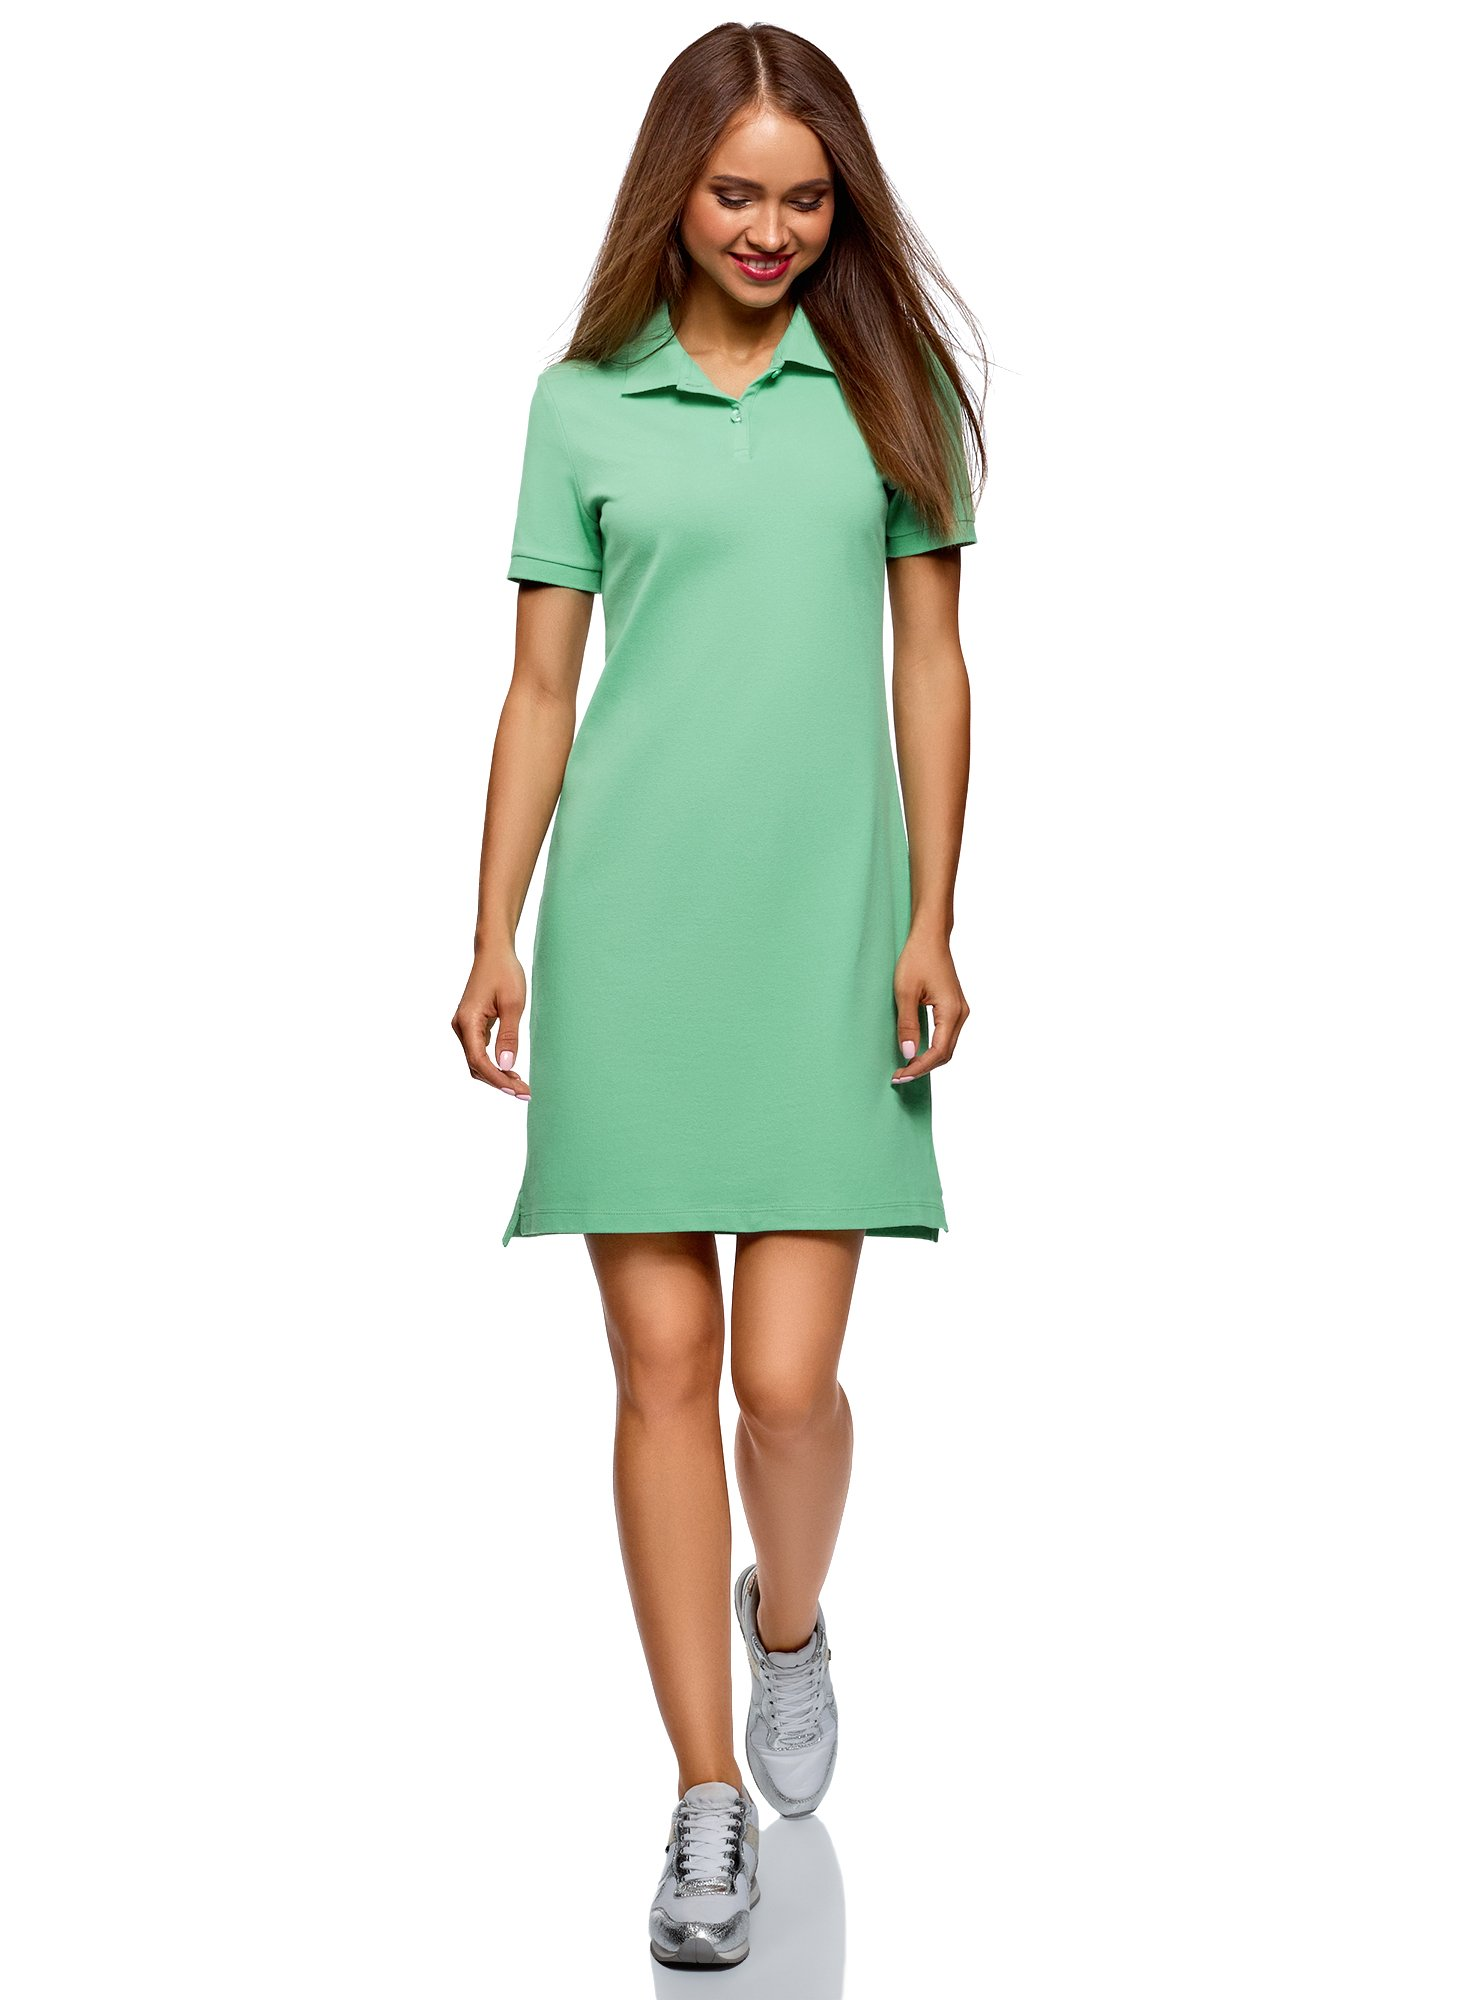 Available at Amazon: oodji Ultra Women's Pique Polo Dress